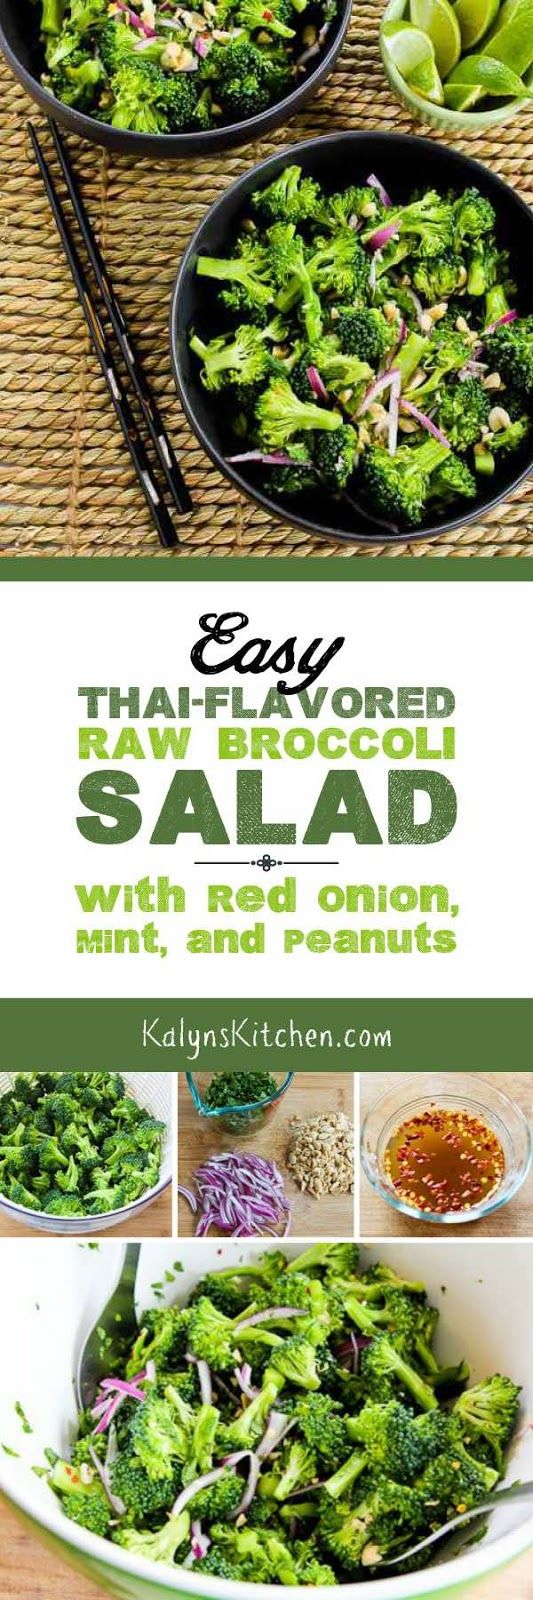 We LOVED this Easy Thai-Flavored Raw Broccoli Salad with Red Onion, Mint, and Peanuts, and this tasty salad is low-carb, gluten-free, dairy-free, and South Beach Diet friendly. [found on KalynsKitchen.com]